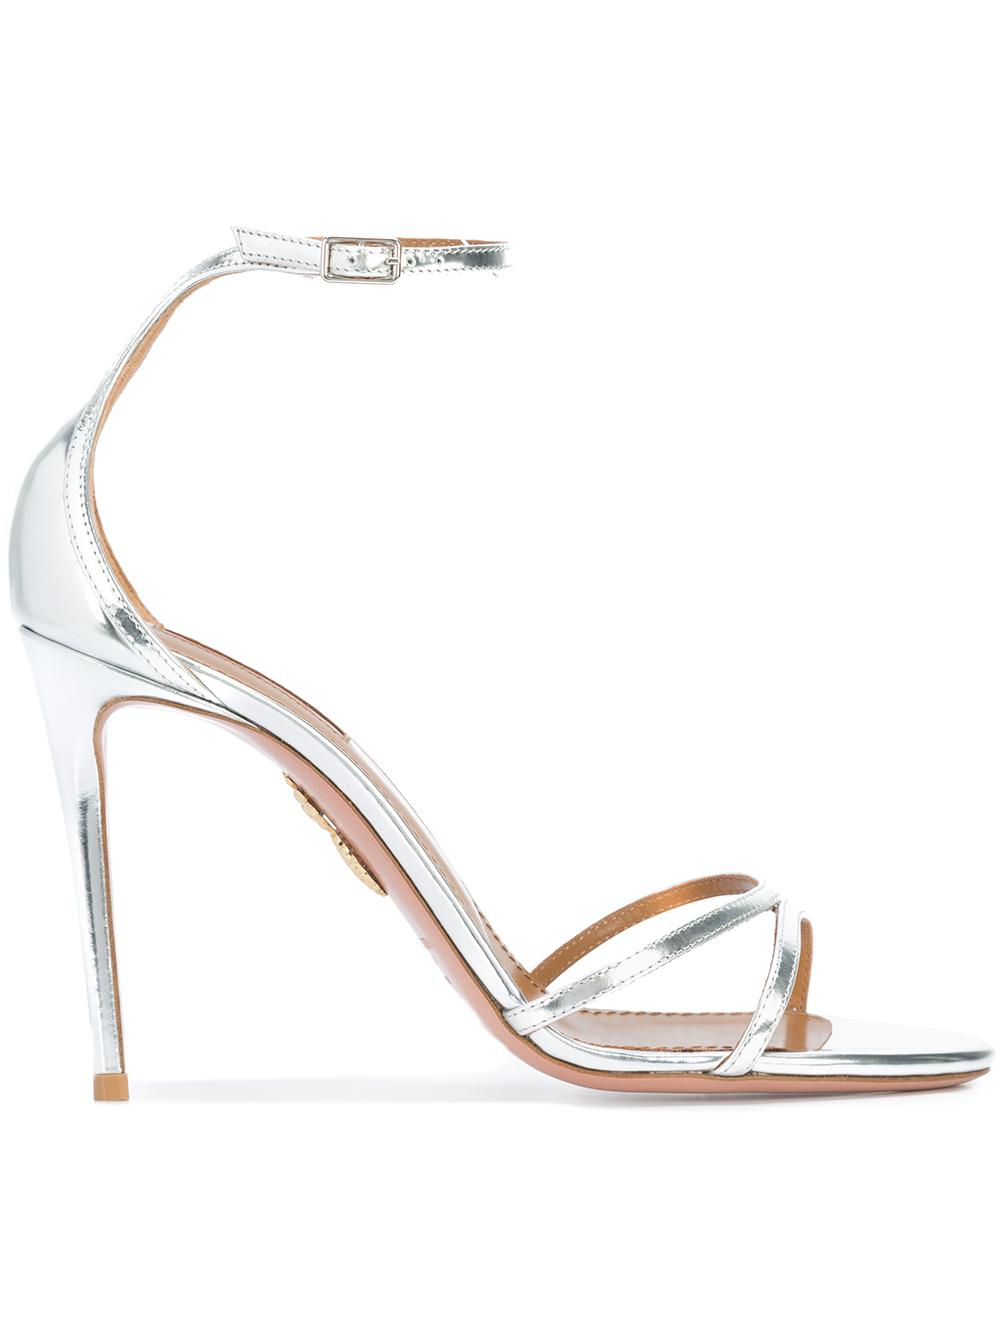 Purist Strappy Metlic 105mm High Heel Sandal